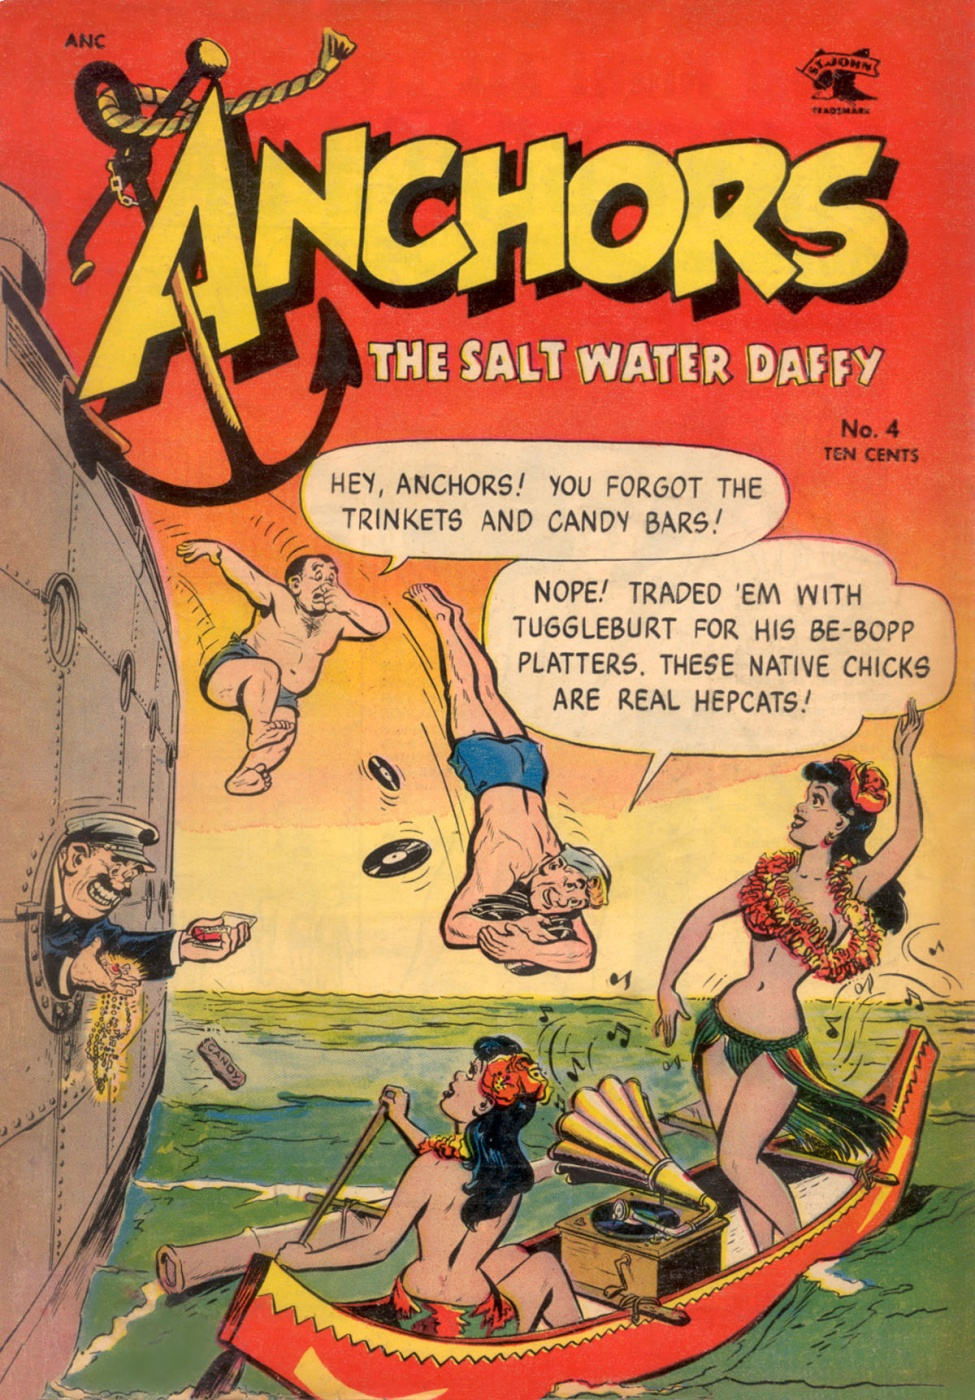 Funny Comics: Anchors the Salt Water Daffy #3